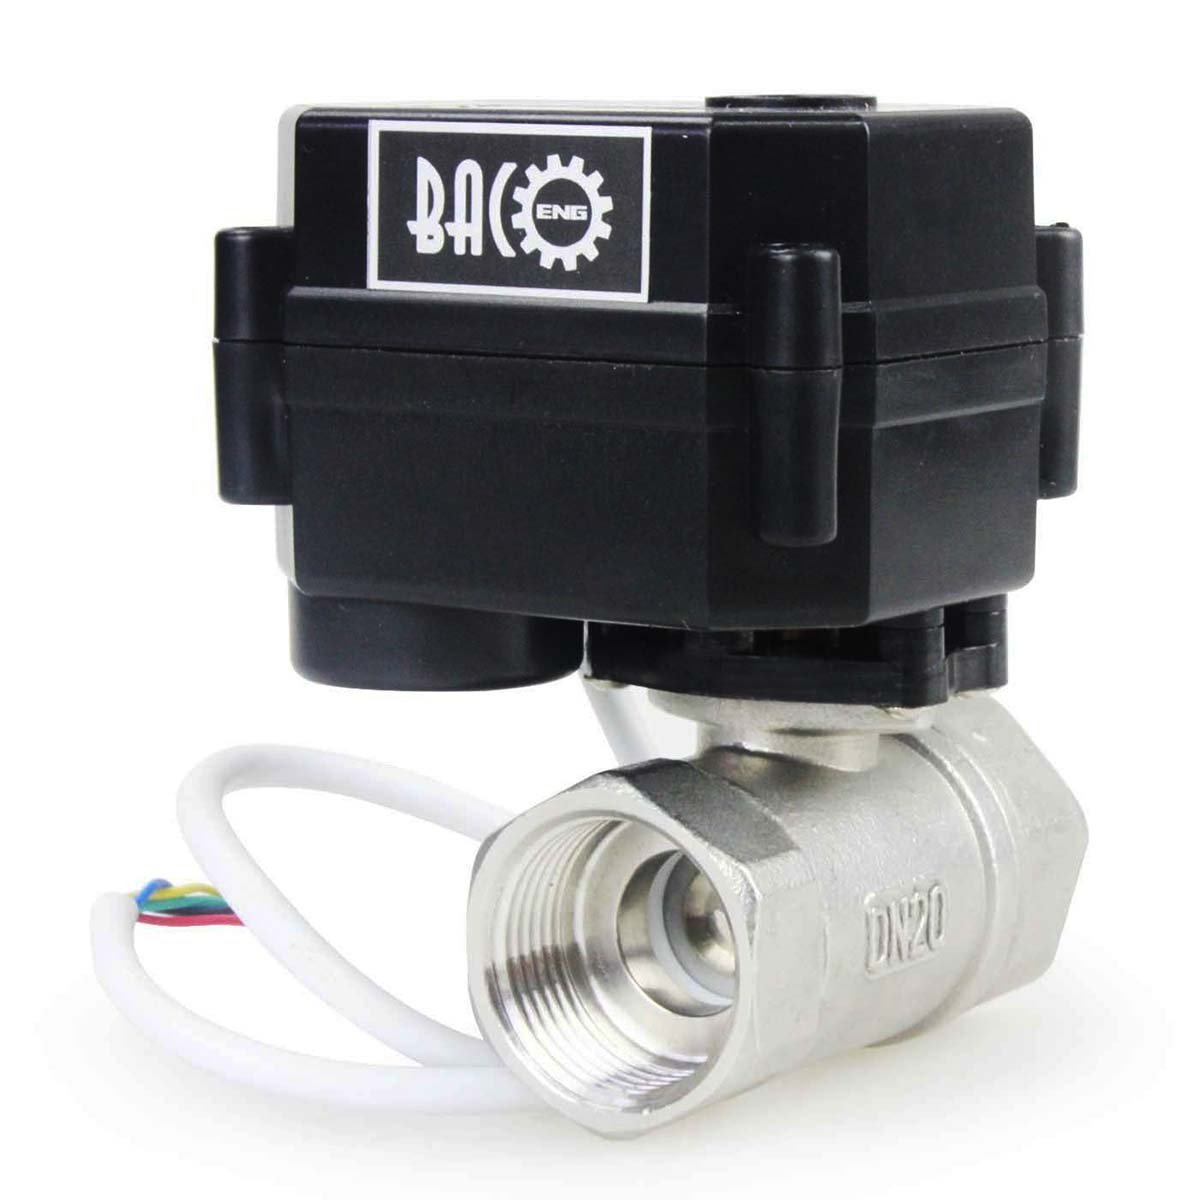 BACOENG 3/4'' DC12V SS304 2 Port Motorized Ball Valve, Electric Ball Valve CR05 NPT